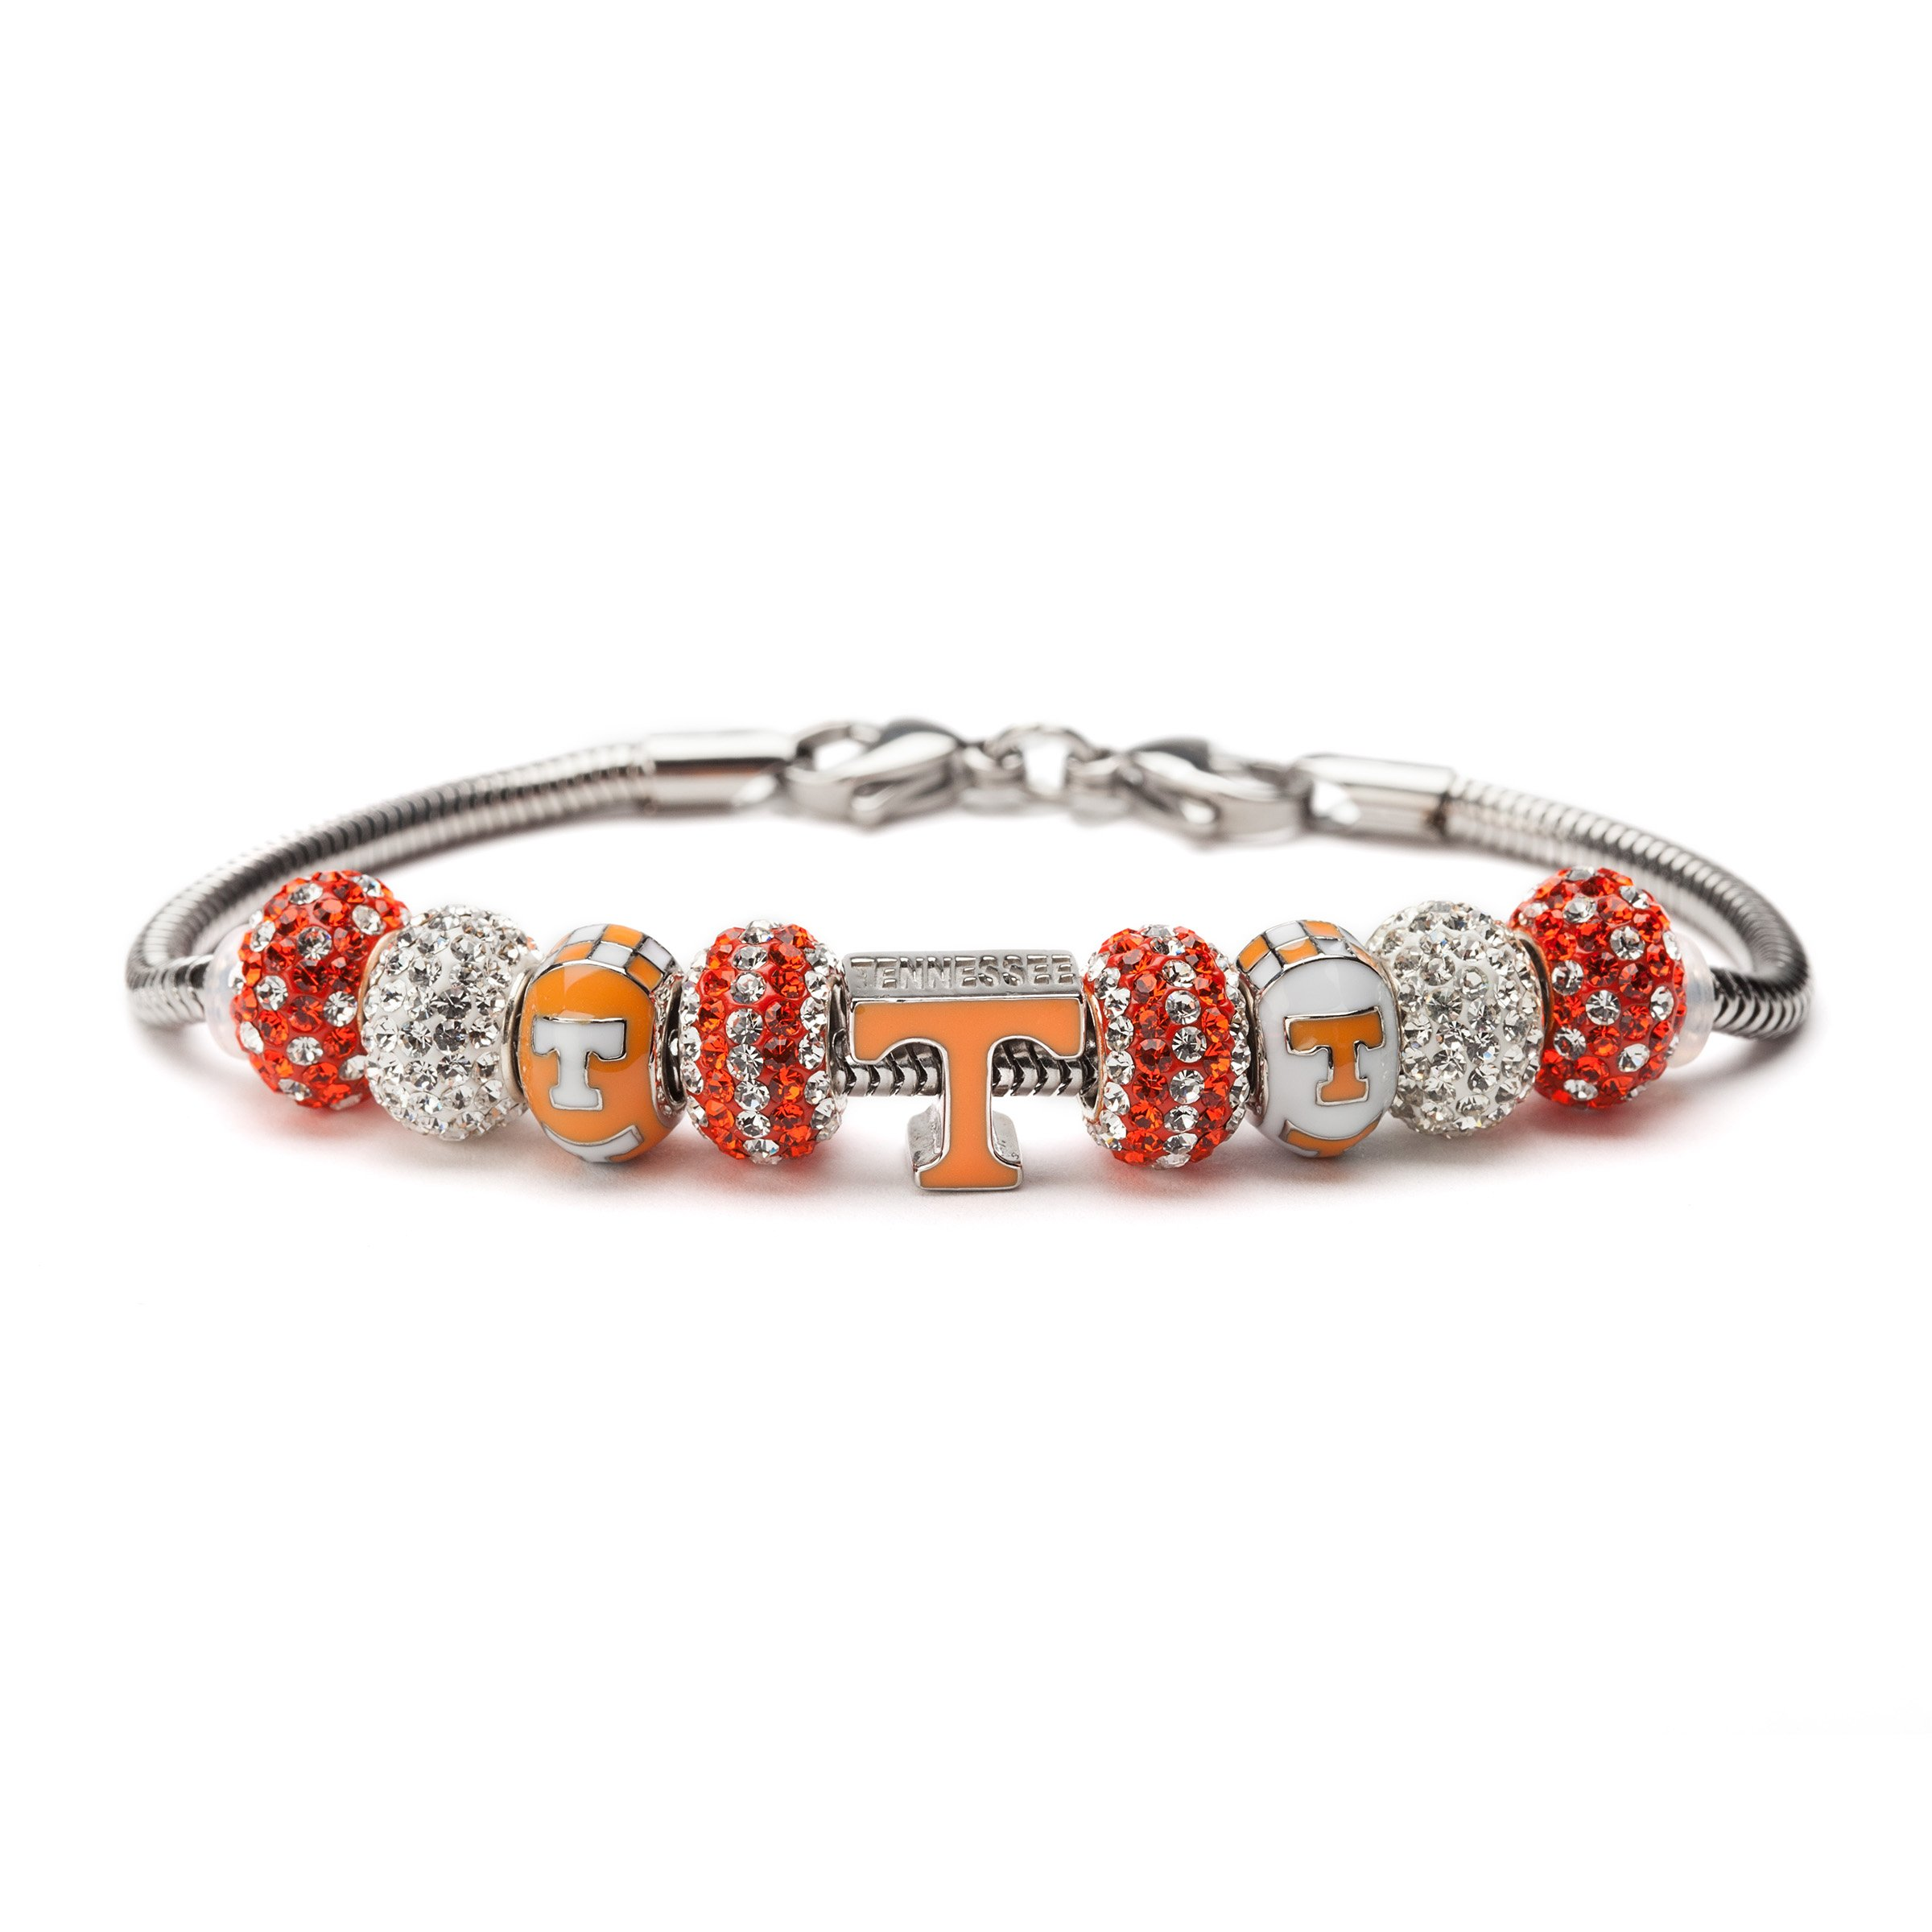 University of Tennessee Charm Bracelet | Tennessee Stainless Steel Bracelet | Tennessee Volunteers Gifts | Product | Officially Licensed Jewelry by University of Tennessee by Stone Armory